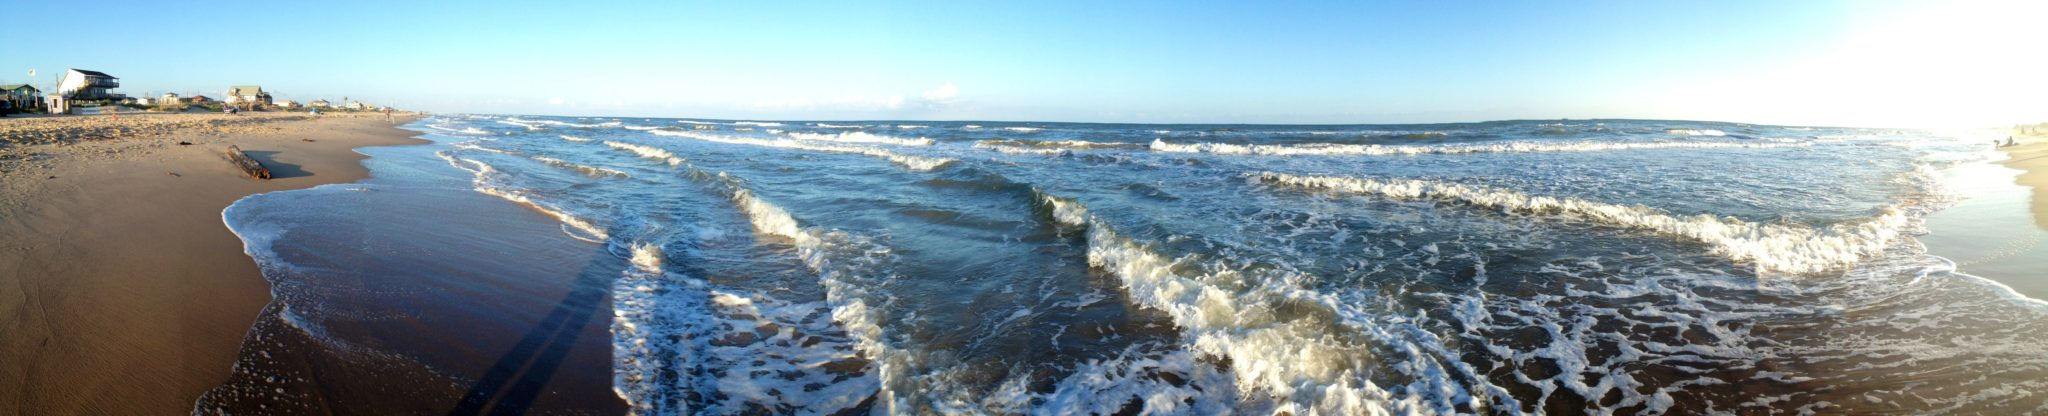 Waves at Surfside